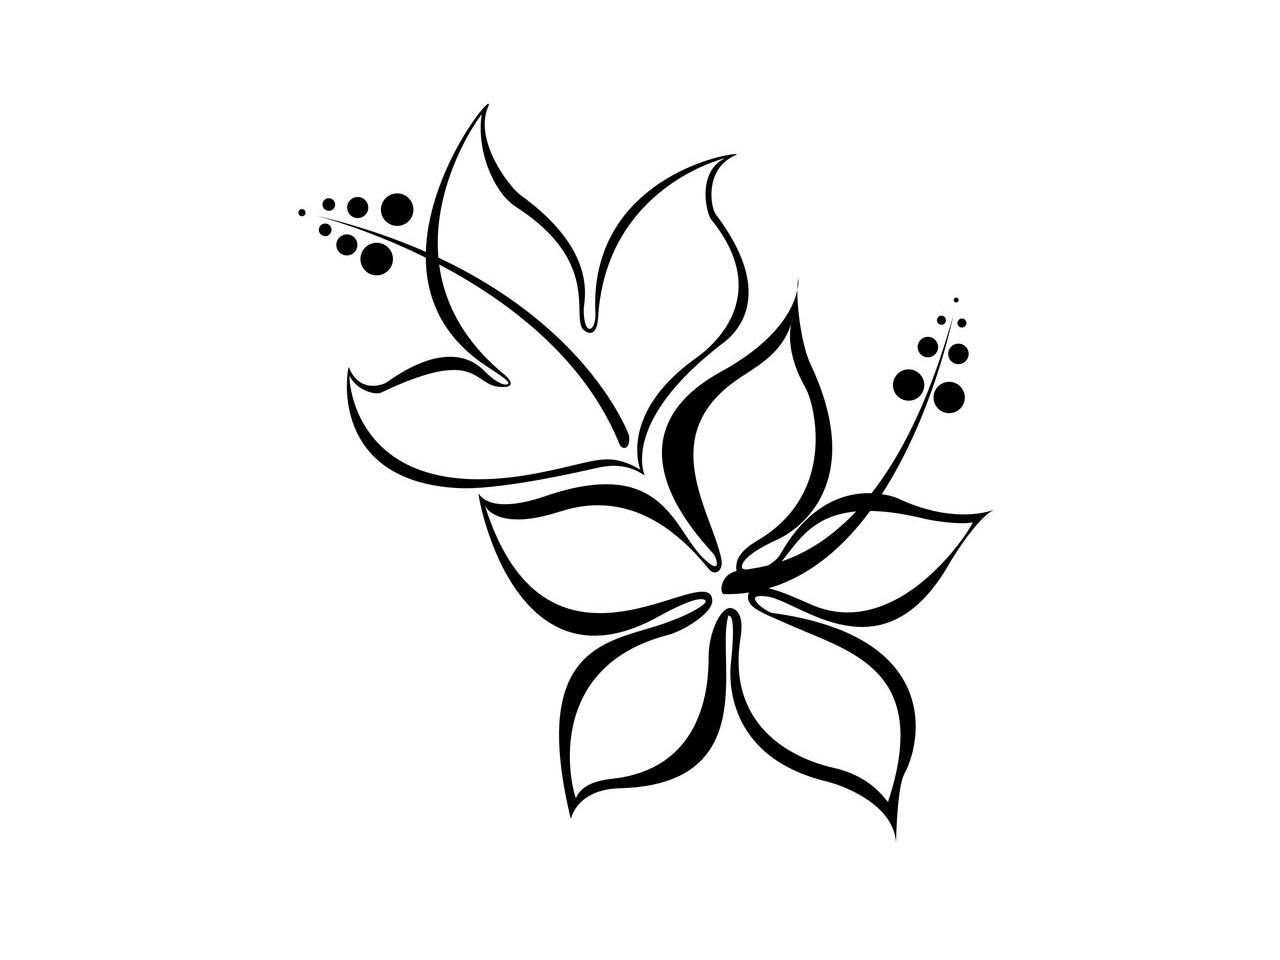 1280x960 Coloring Pages Simple Drawing Designs Coloring Pages Simple